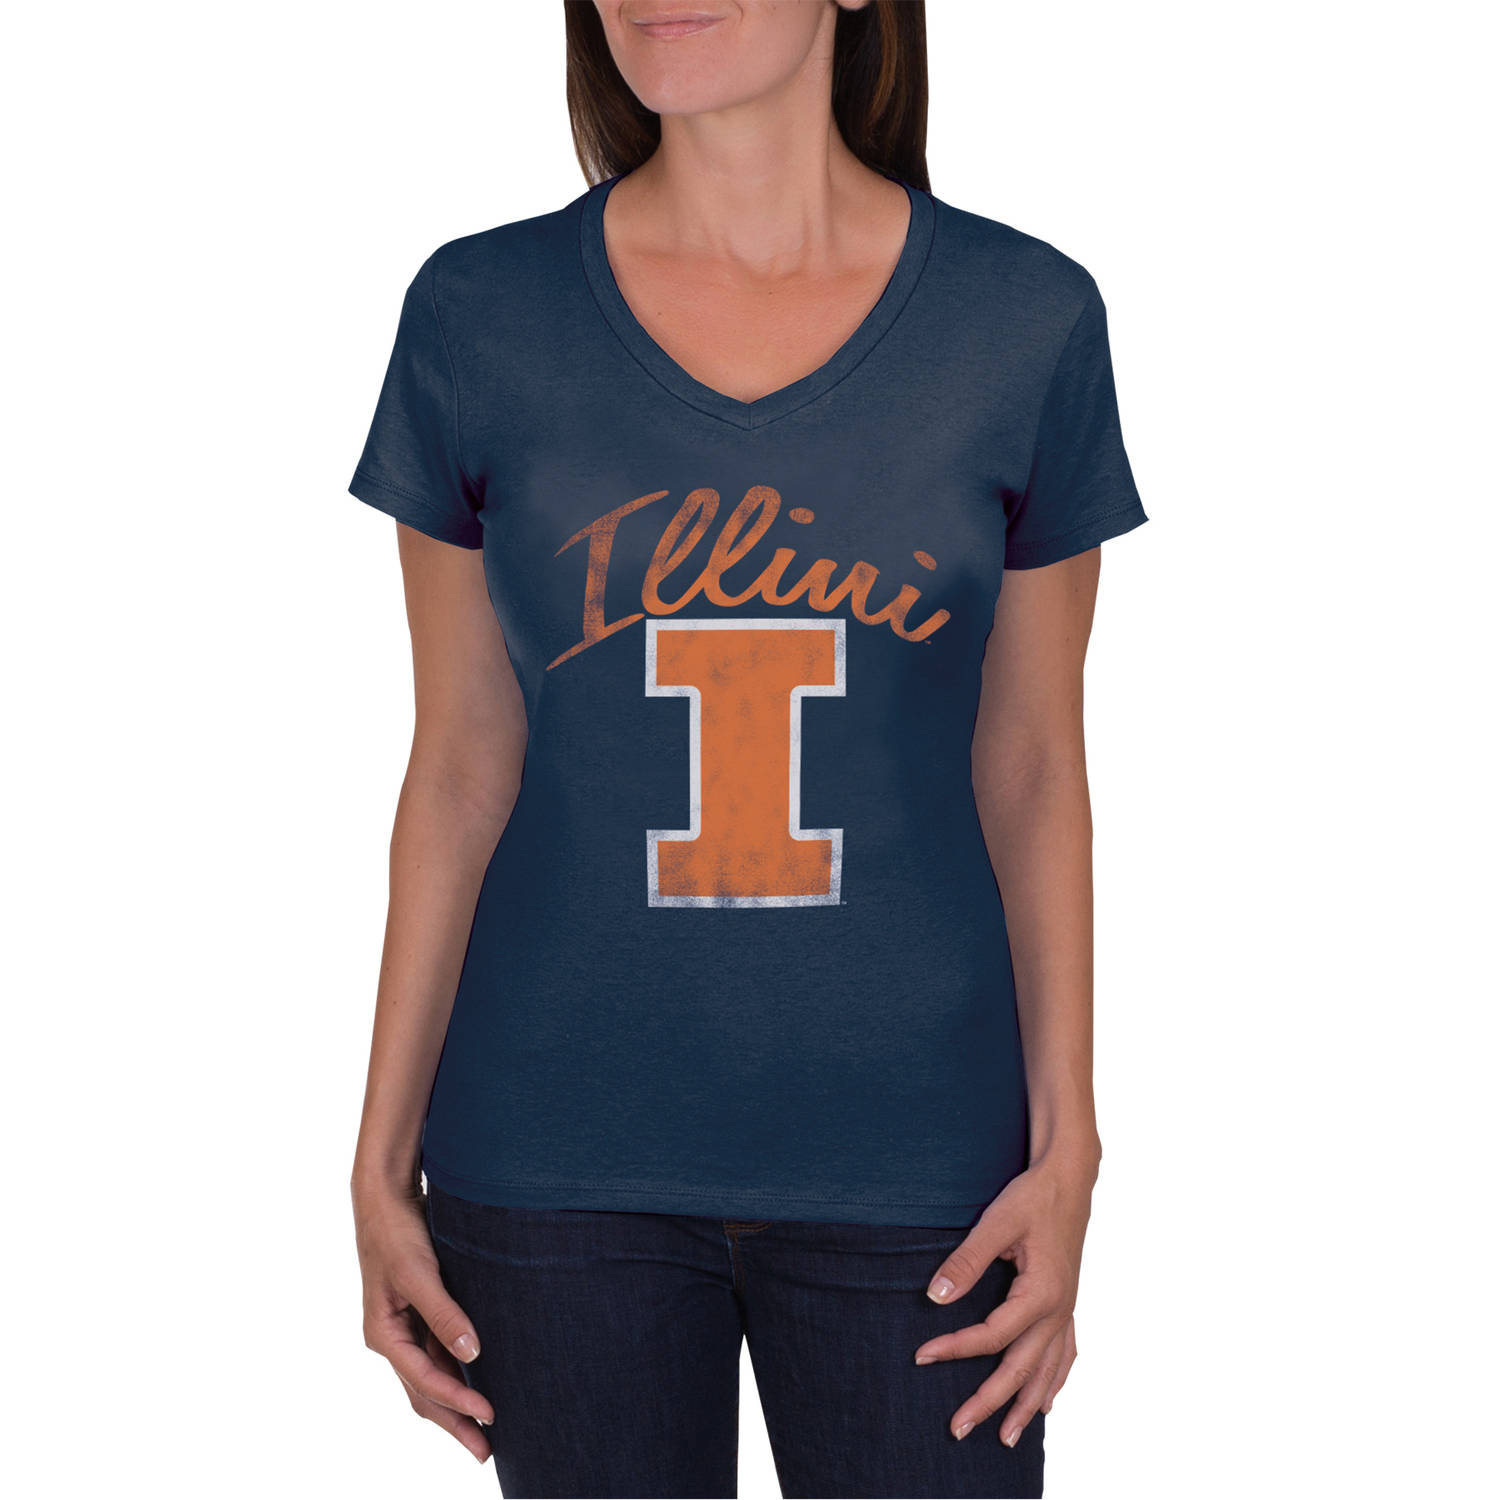 NCAA Illinois Fighting Illini Women's V-Neck Tunic Cotton Tee Shirt